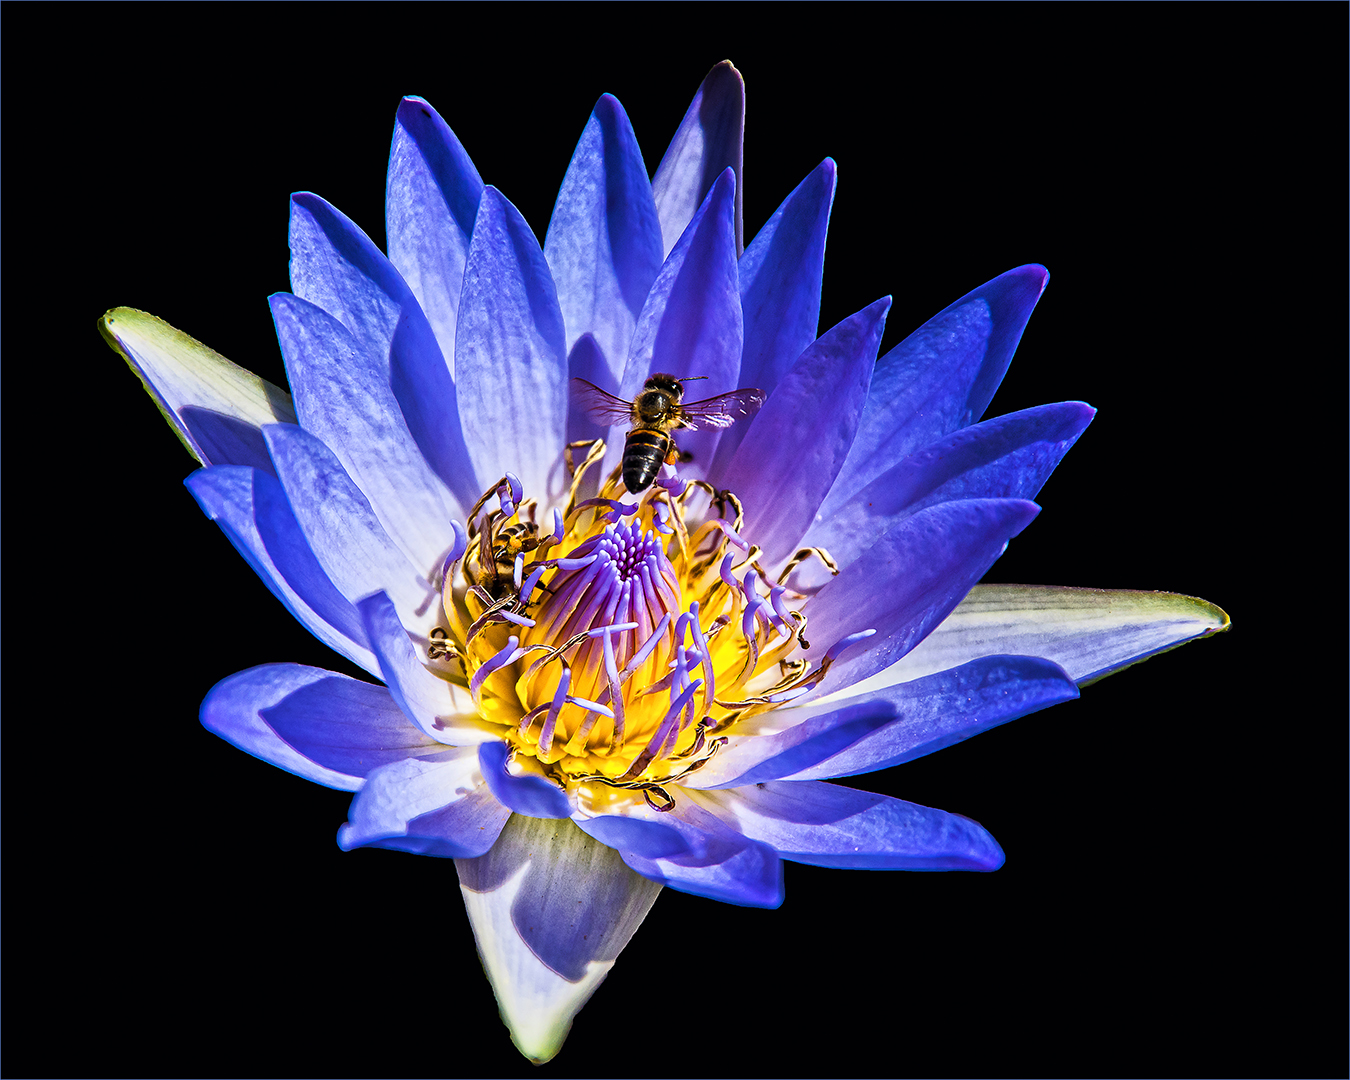 PS001-Water-Lilly-2-Desmond-Labuschagne